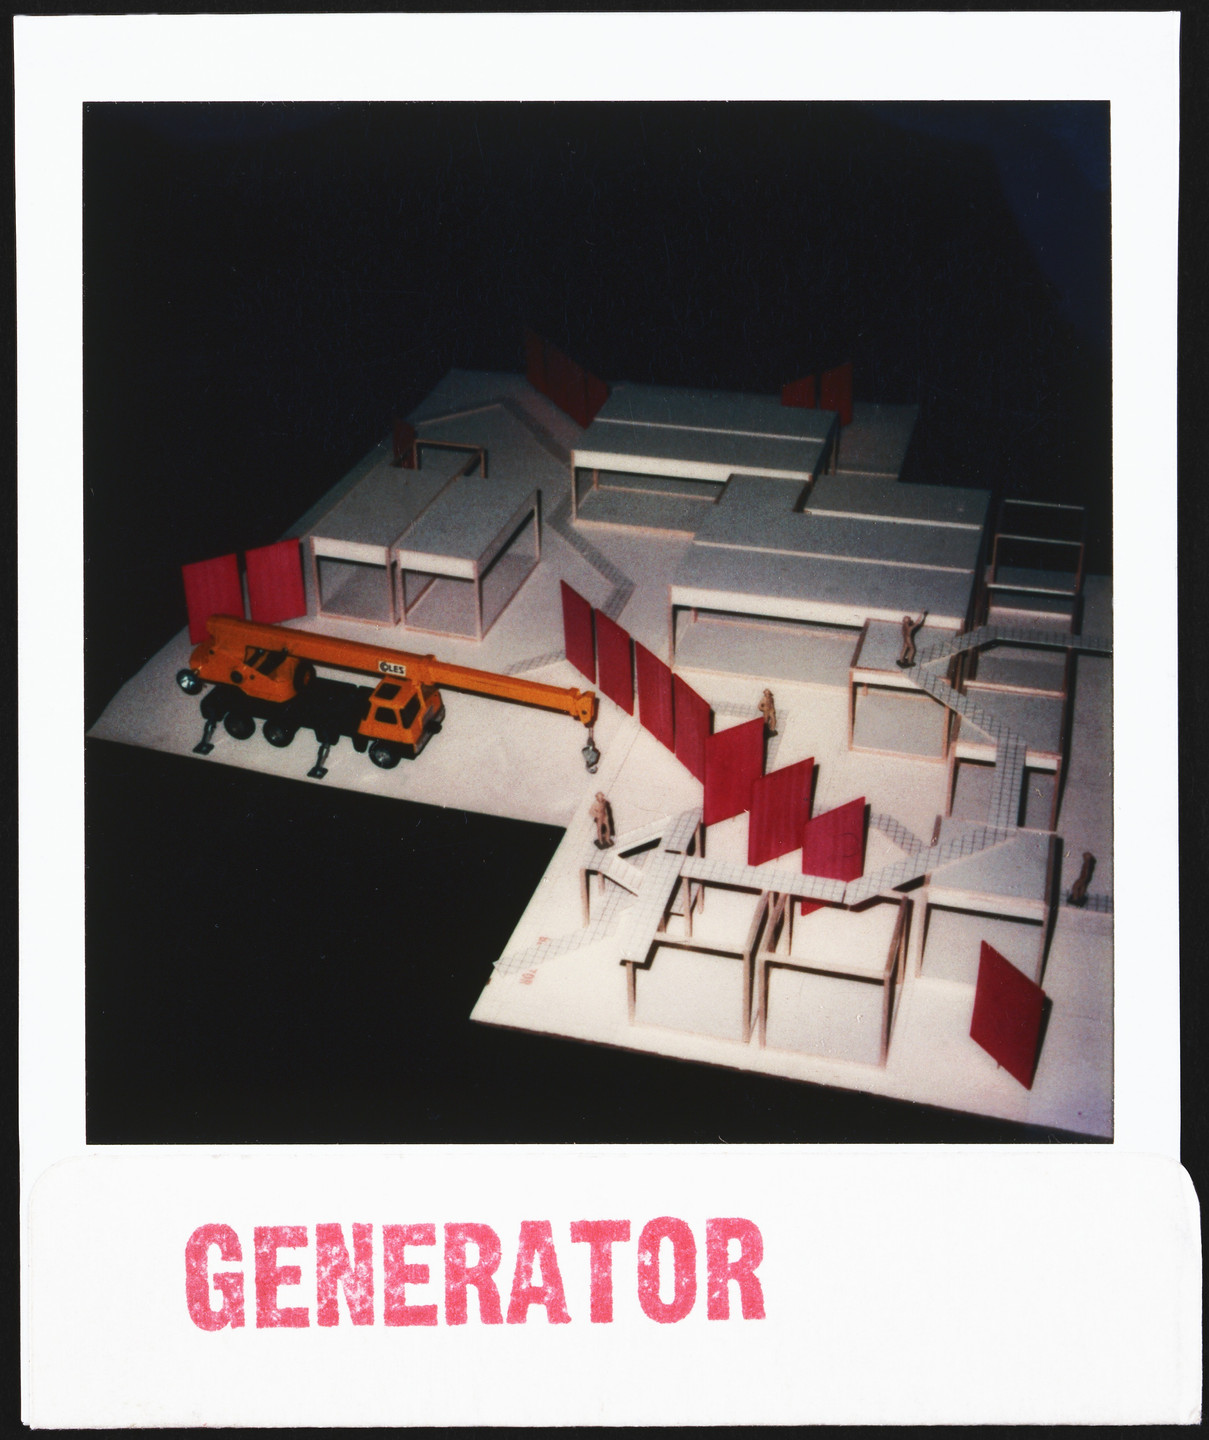 Cedric Price. Generator Project, White Oak, Florida, Axonometric of Model under Construction. 1978-80